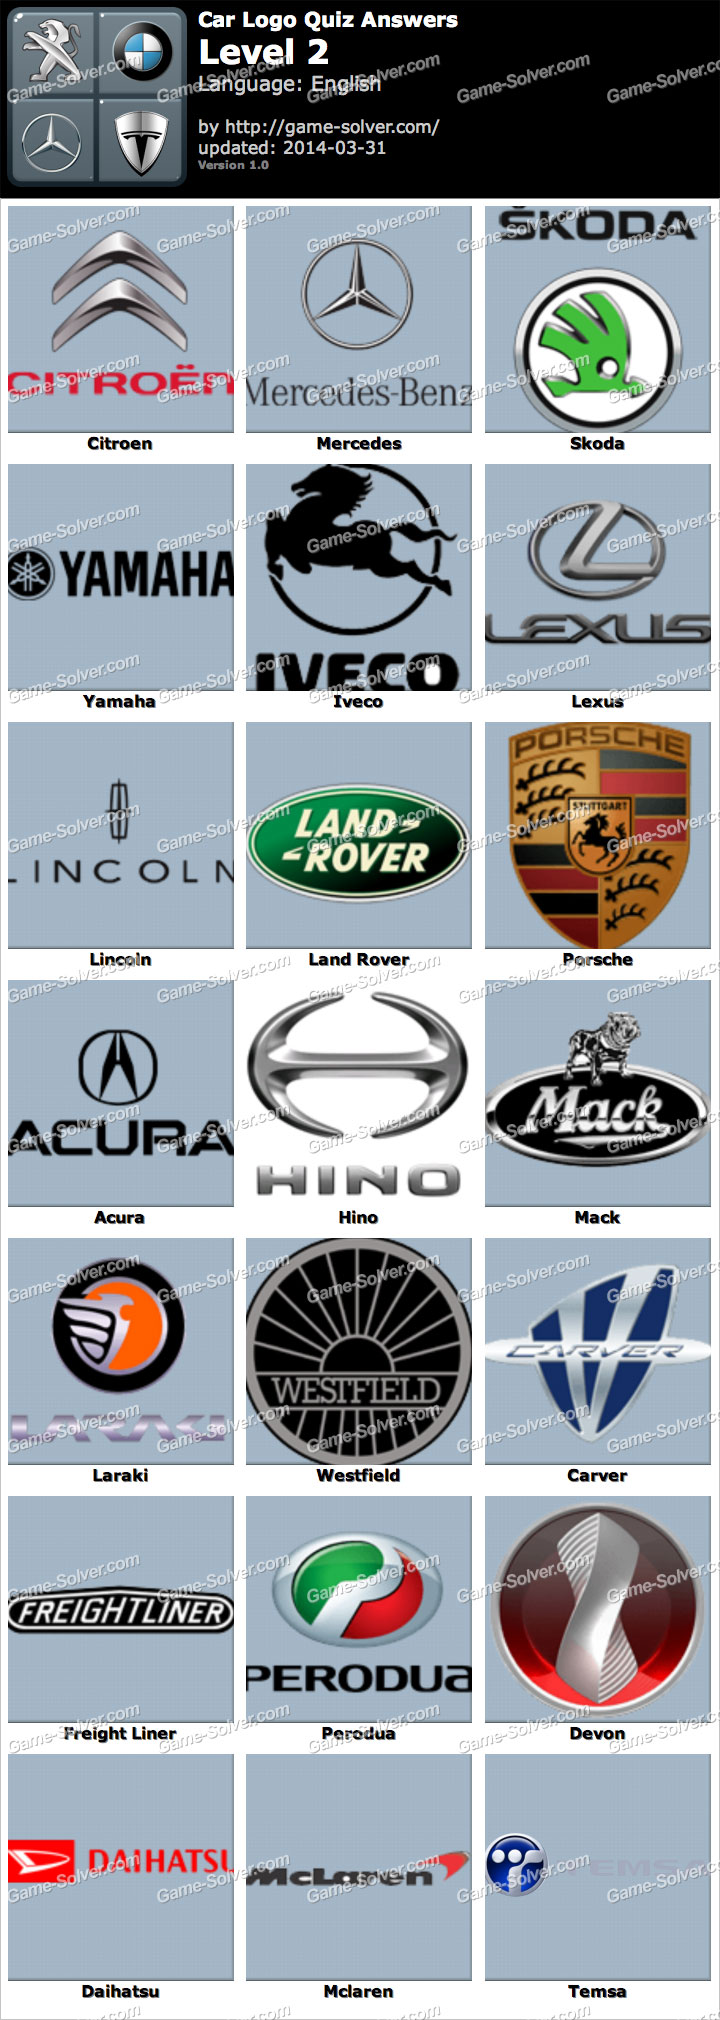 Car Logo Quiz Level 2 - Game Solver Cars Logos Quiz Answers